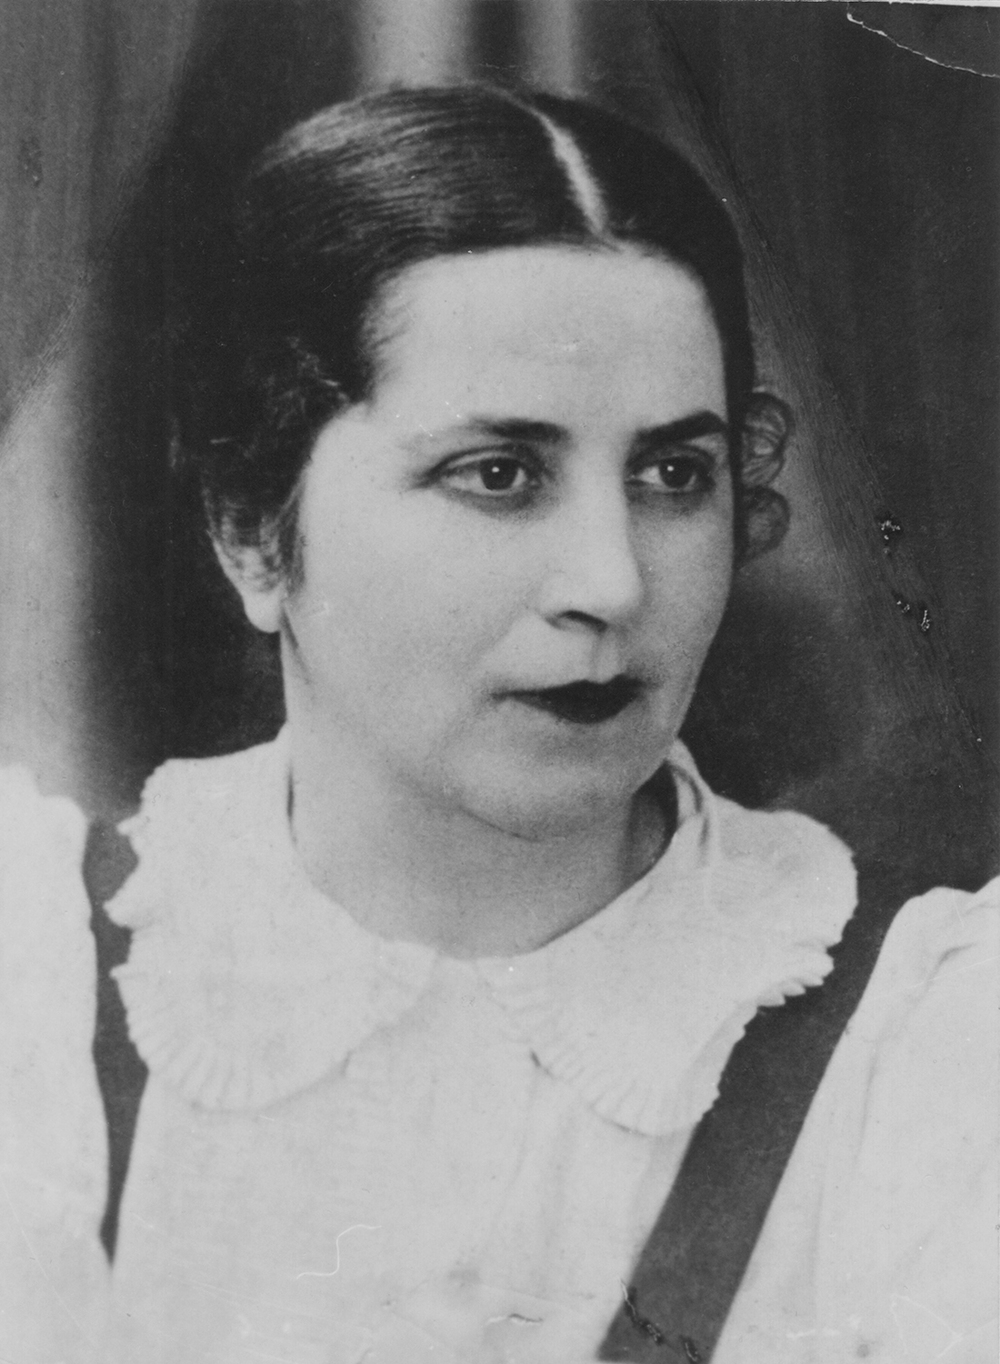 Leonid Rozenberg's mother, Fanya Emmanuilovna, born in 1902